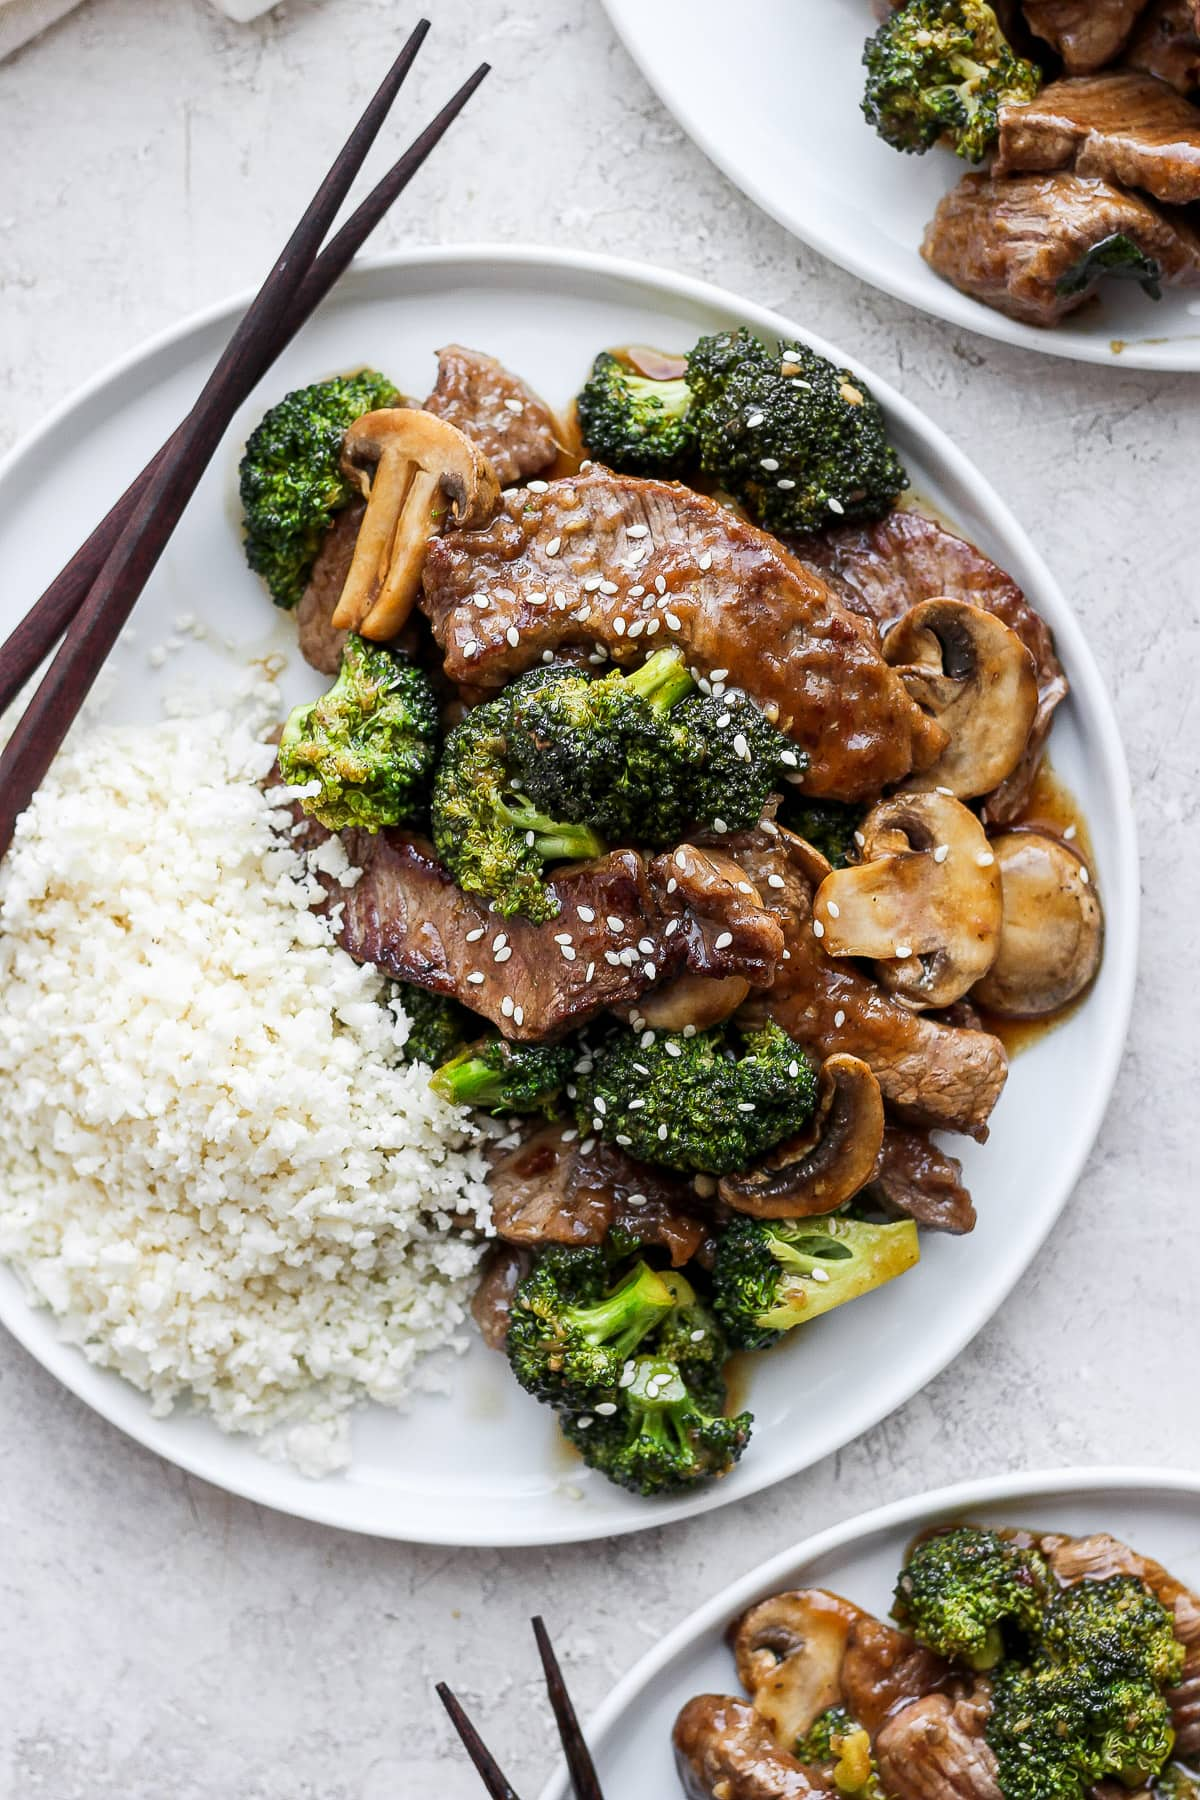 Plate of healthy beef and broccoli with cauliflower rice and chopsticks.